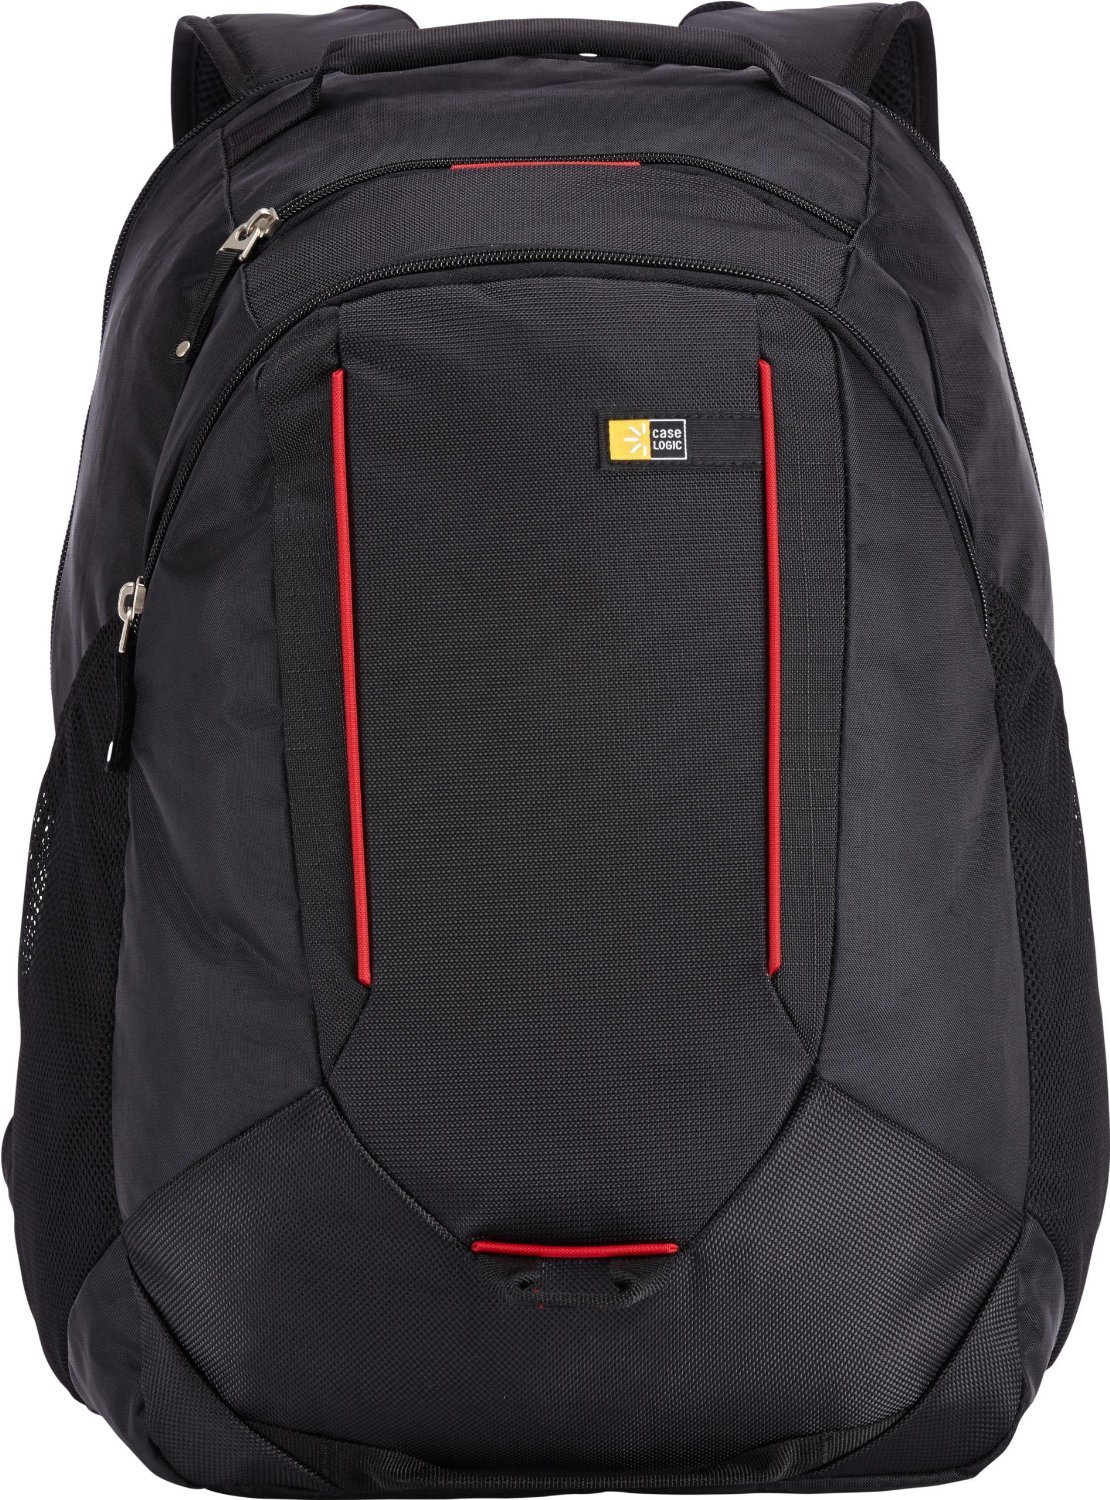 2d351110fe0 Amazon.com: Case Logic Evolution Backpack for 15.6-Inch Laptop and Tablet  (BPEB-115): Computers & Accessories